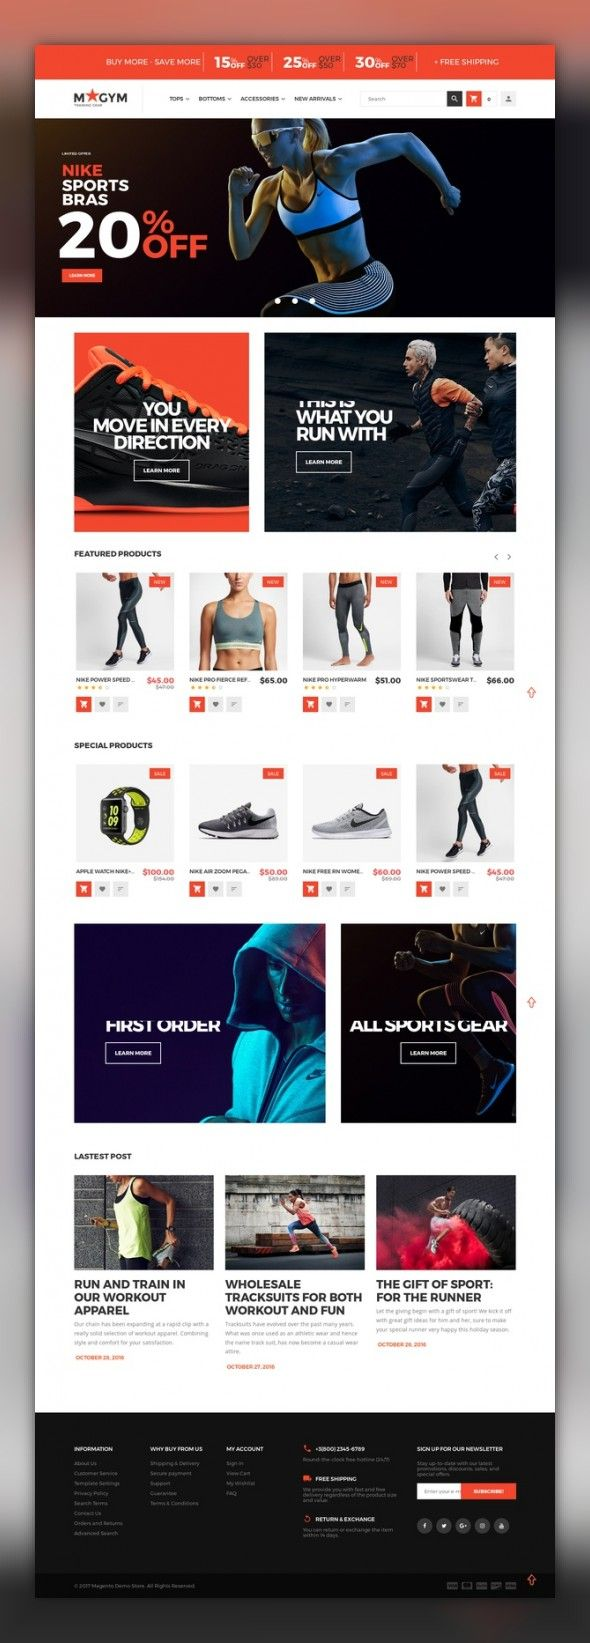 MyGym - Sport Store Magento Theme E-commerce Templates, Magento Themes, Sports, Outdoors & Travel, Sport Templates, More Sports The theme is 100% responsive. Tested carefully on various screens from mobile to desktop. MyGym Magento 2 Theme is created for sporting goods, sports equipment or gym gear online stores. A number o...